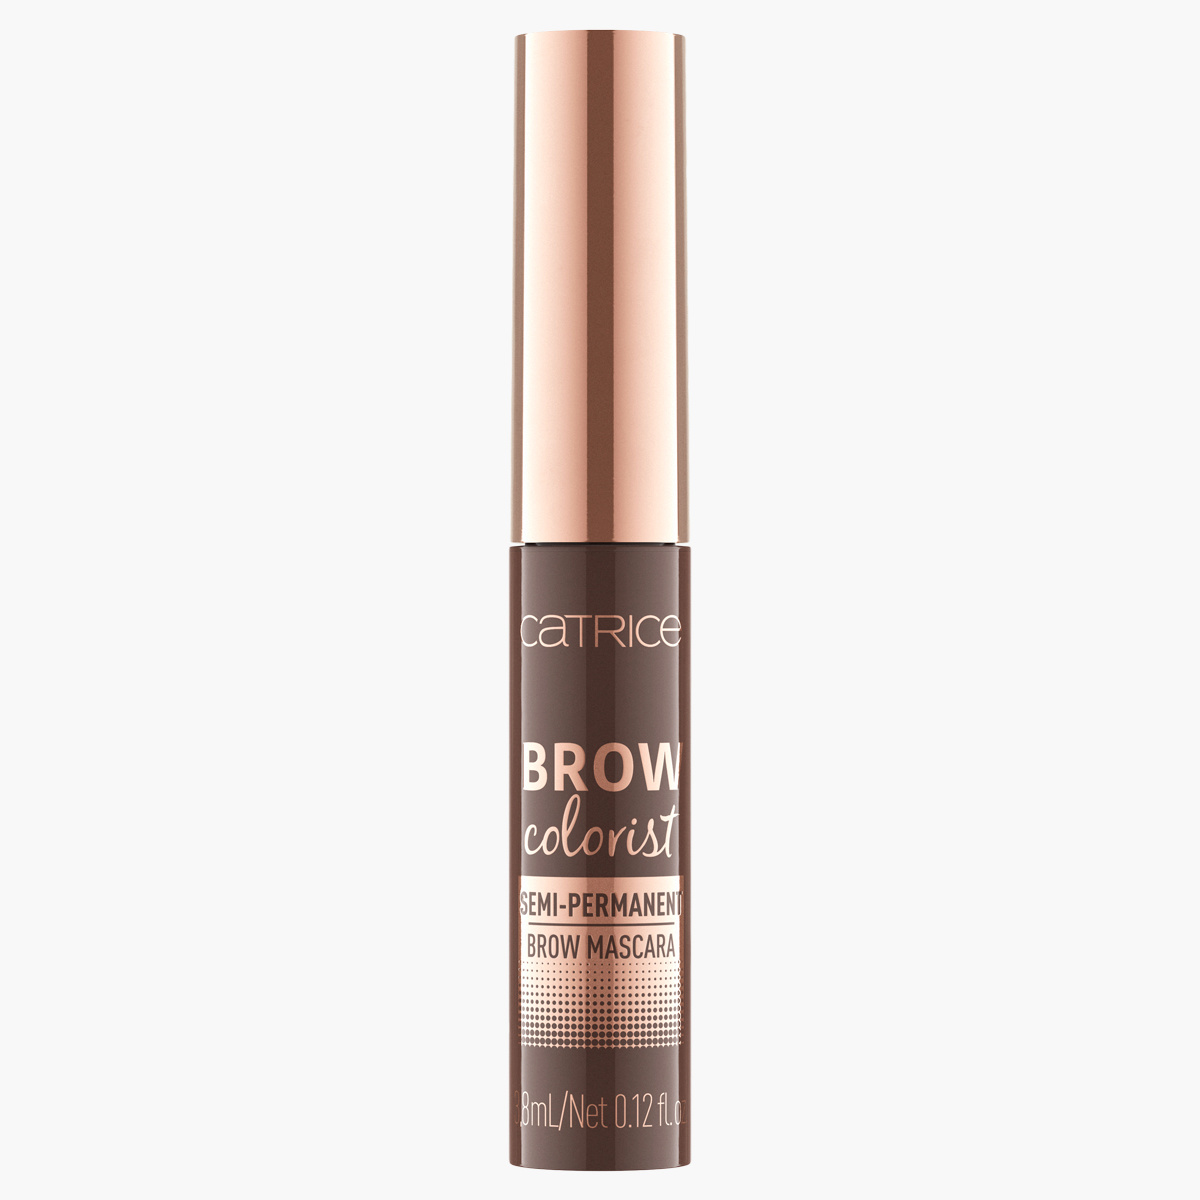 Catrice Cosmetics Brow Colorist Semi-Permanent Brow Mascara